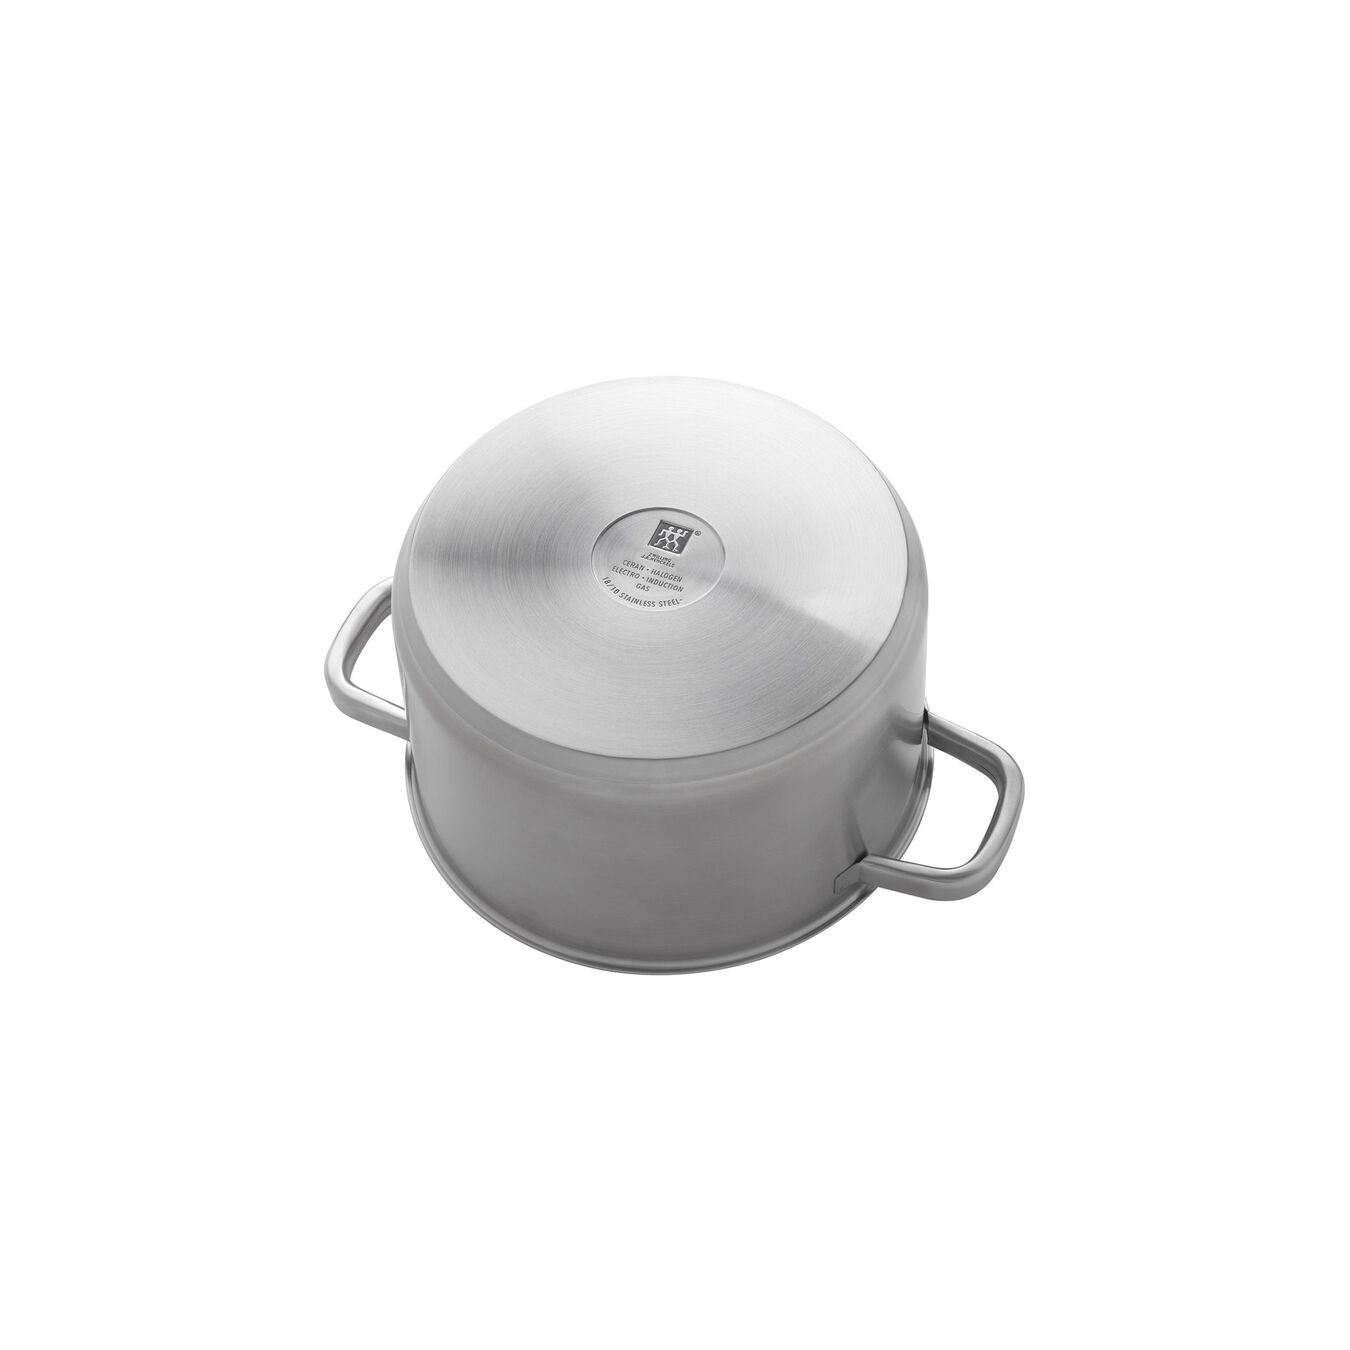 18/10 Stainless Steel 2.0L Sauce Pot with Lid,,large 2